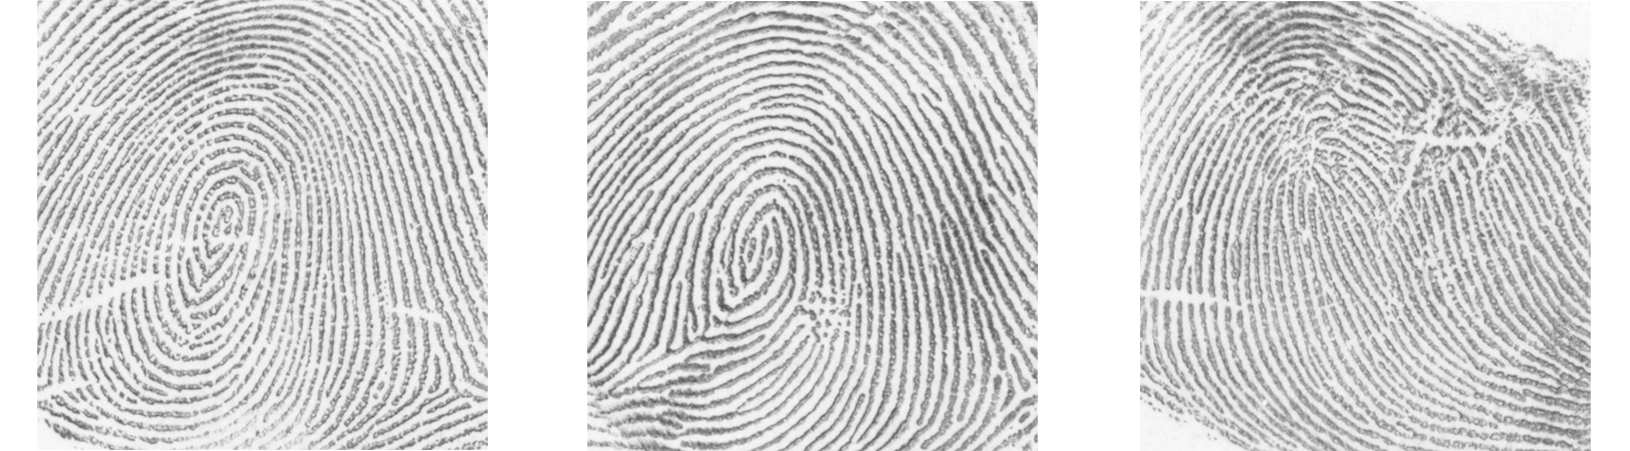 Figure 6.3: Representation of minutiae observed on fingerprints. Figure 6.4: Representation of wrinkles, creases and warts observed on fingerprints.